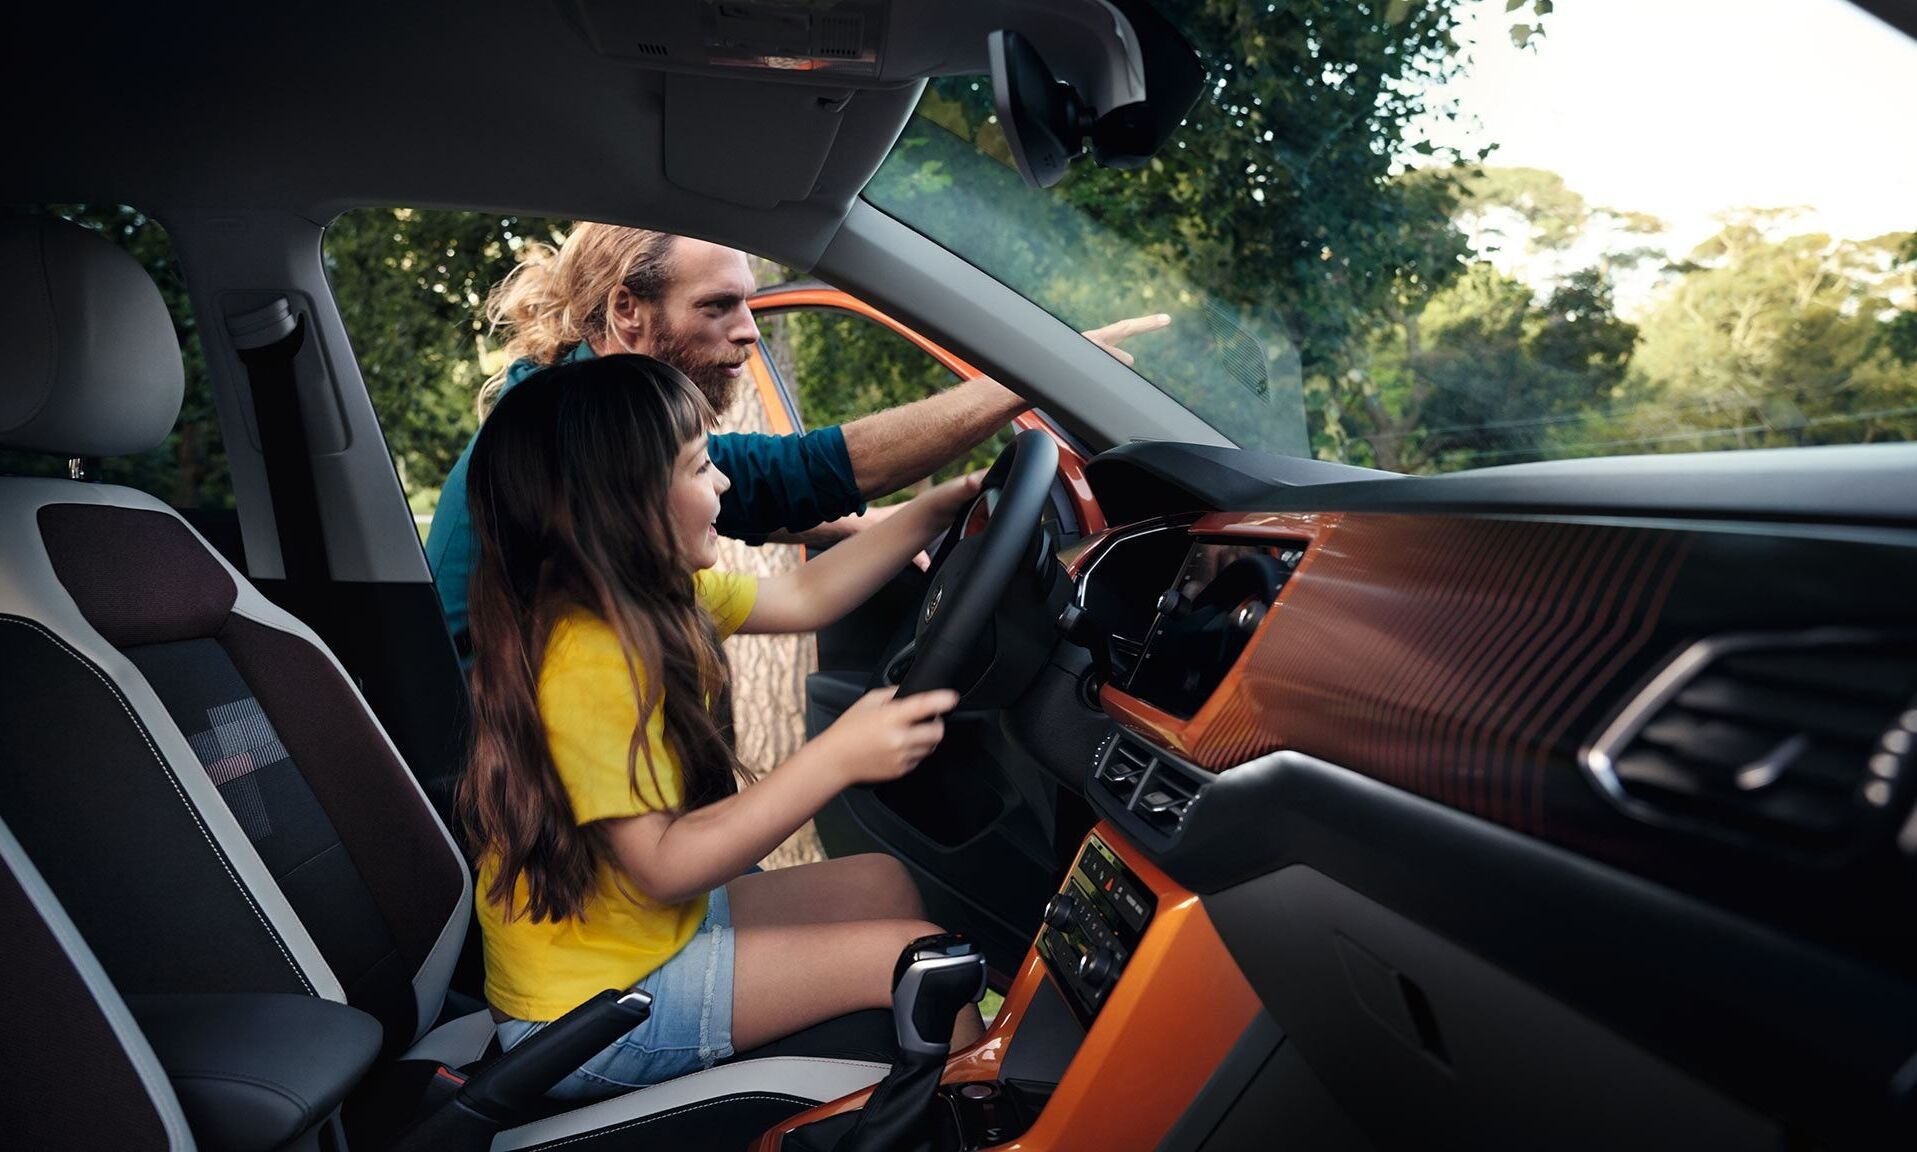 vw t cross interior with woman looking on smartphone